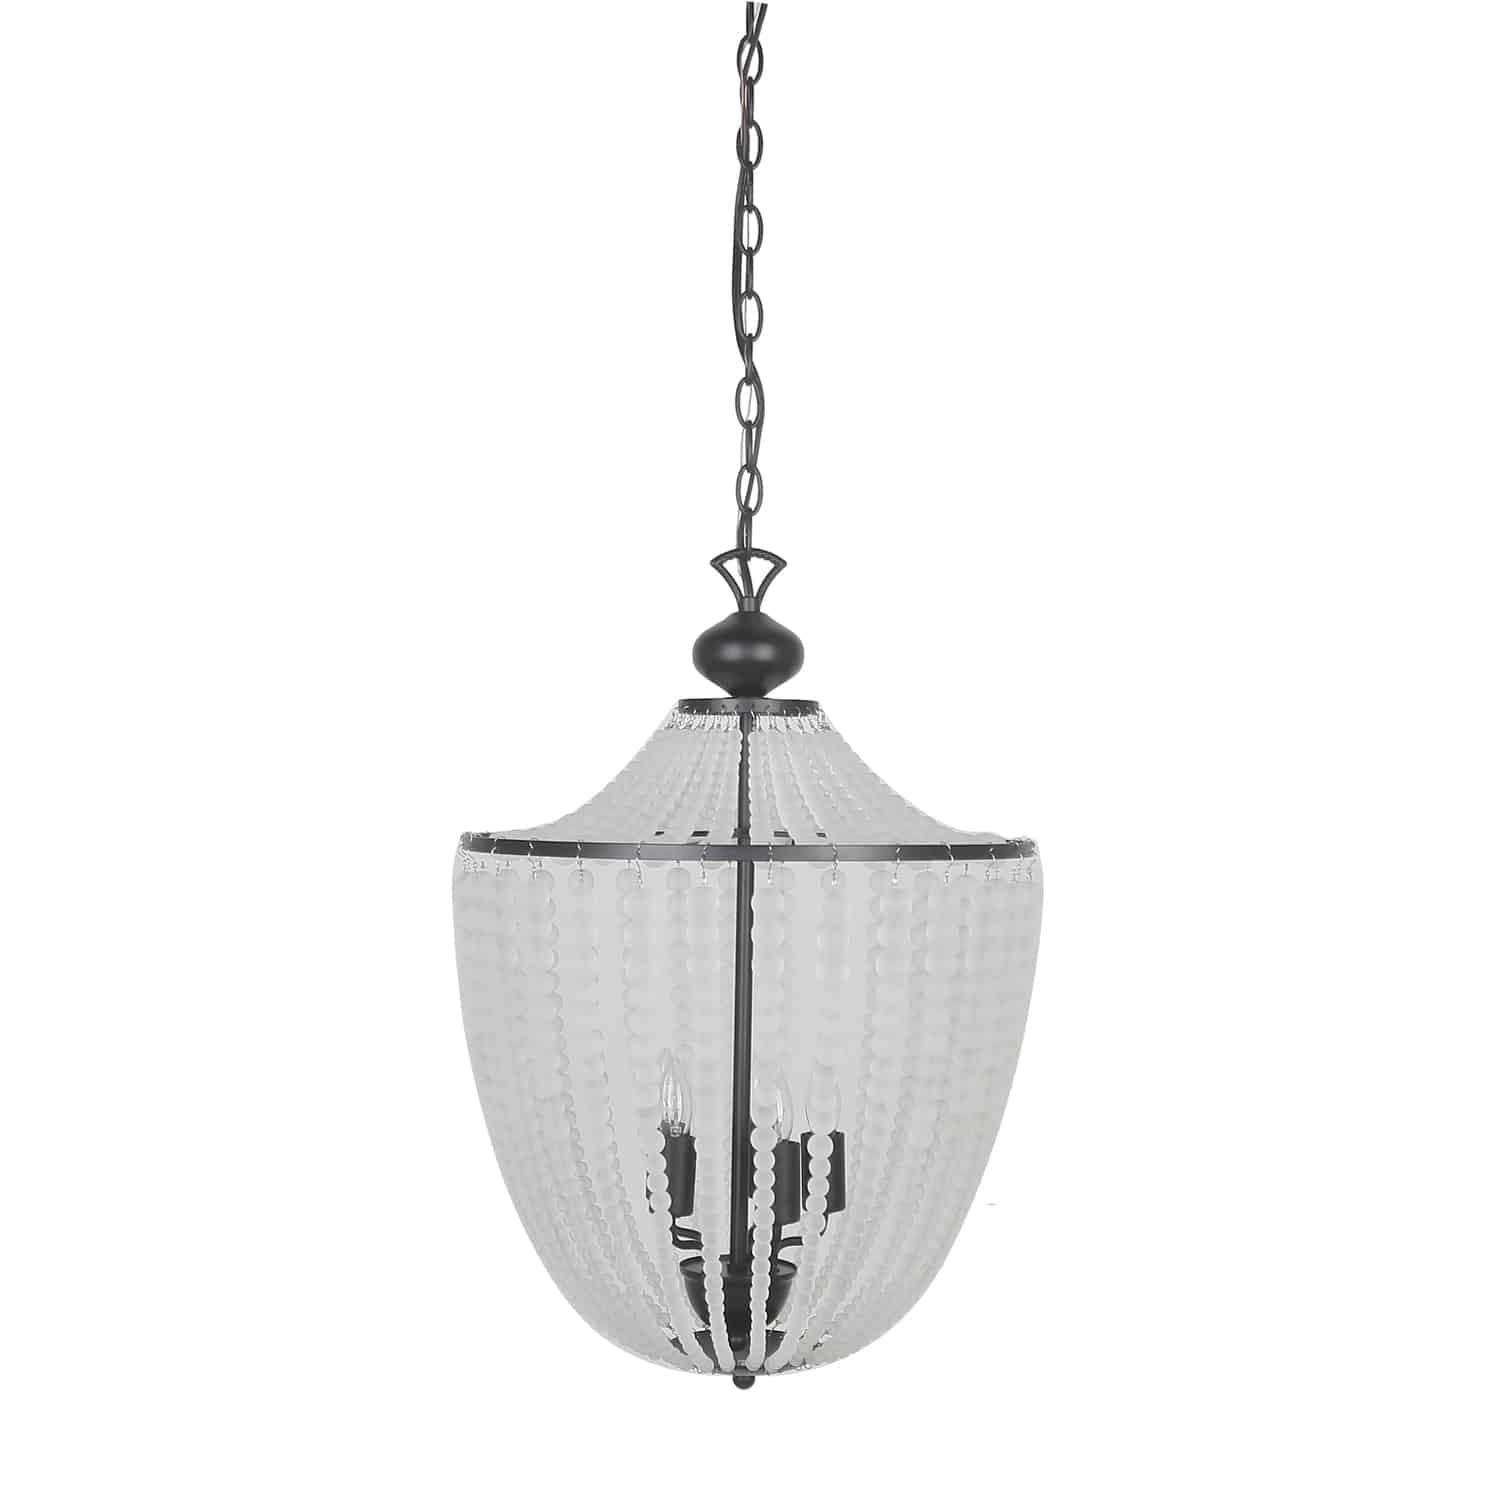 5 Light Incandescent Chandelier Matte Black Finish with Frosted Beads